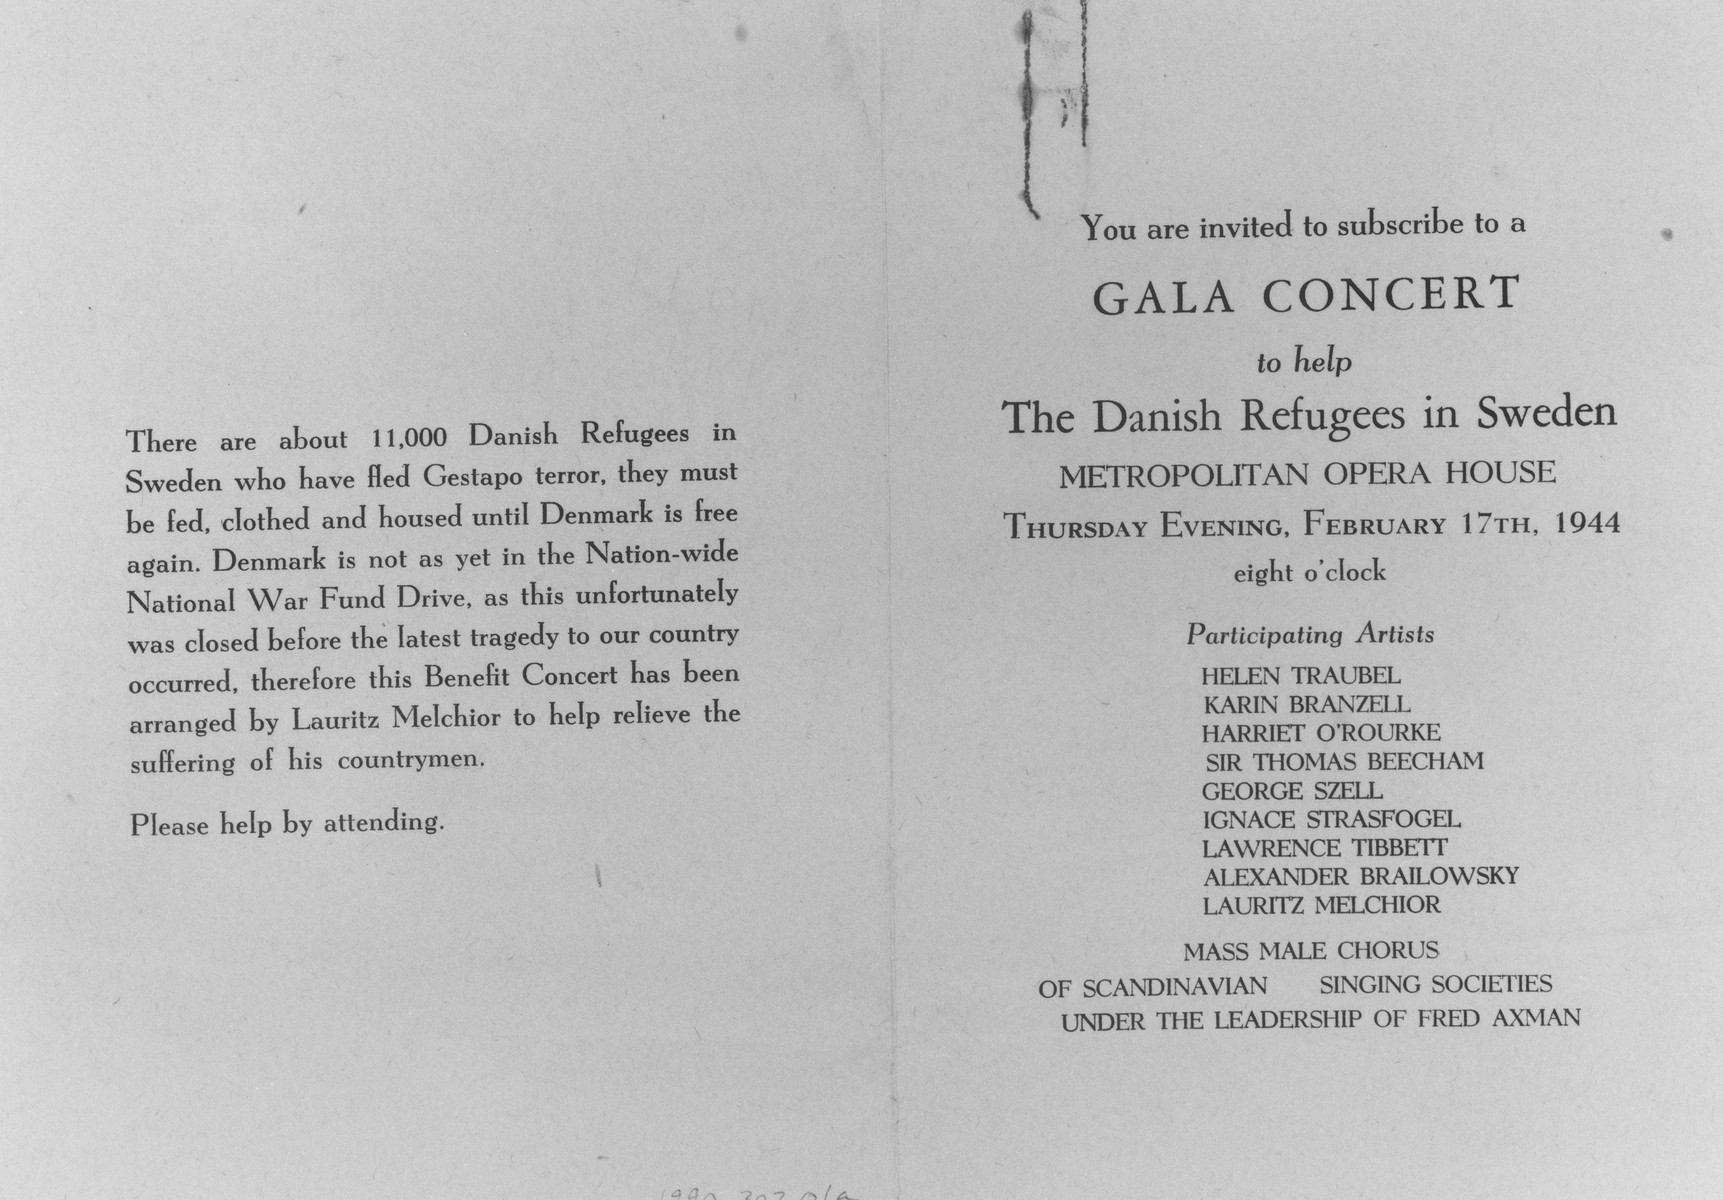 Outside pages of an invitation to a gala concert at the Metropolitan Opera House to aid Danish refugees in Sweden.